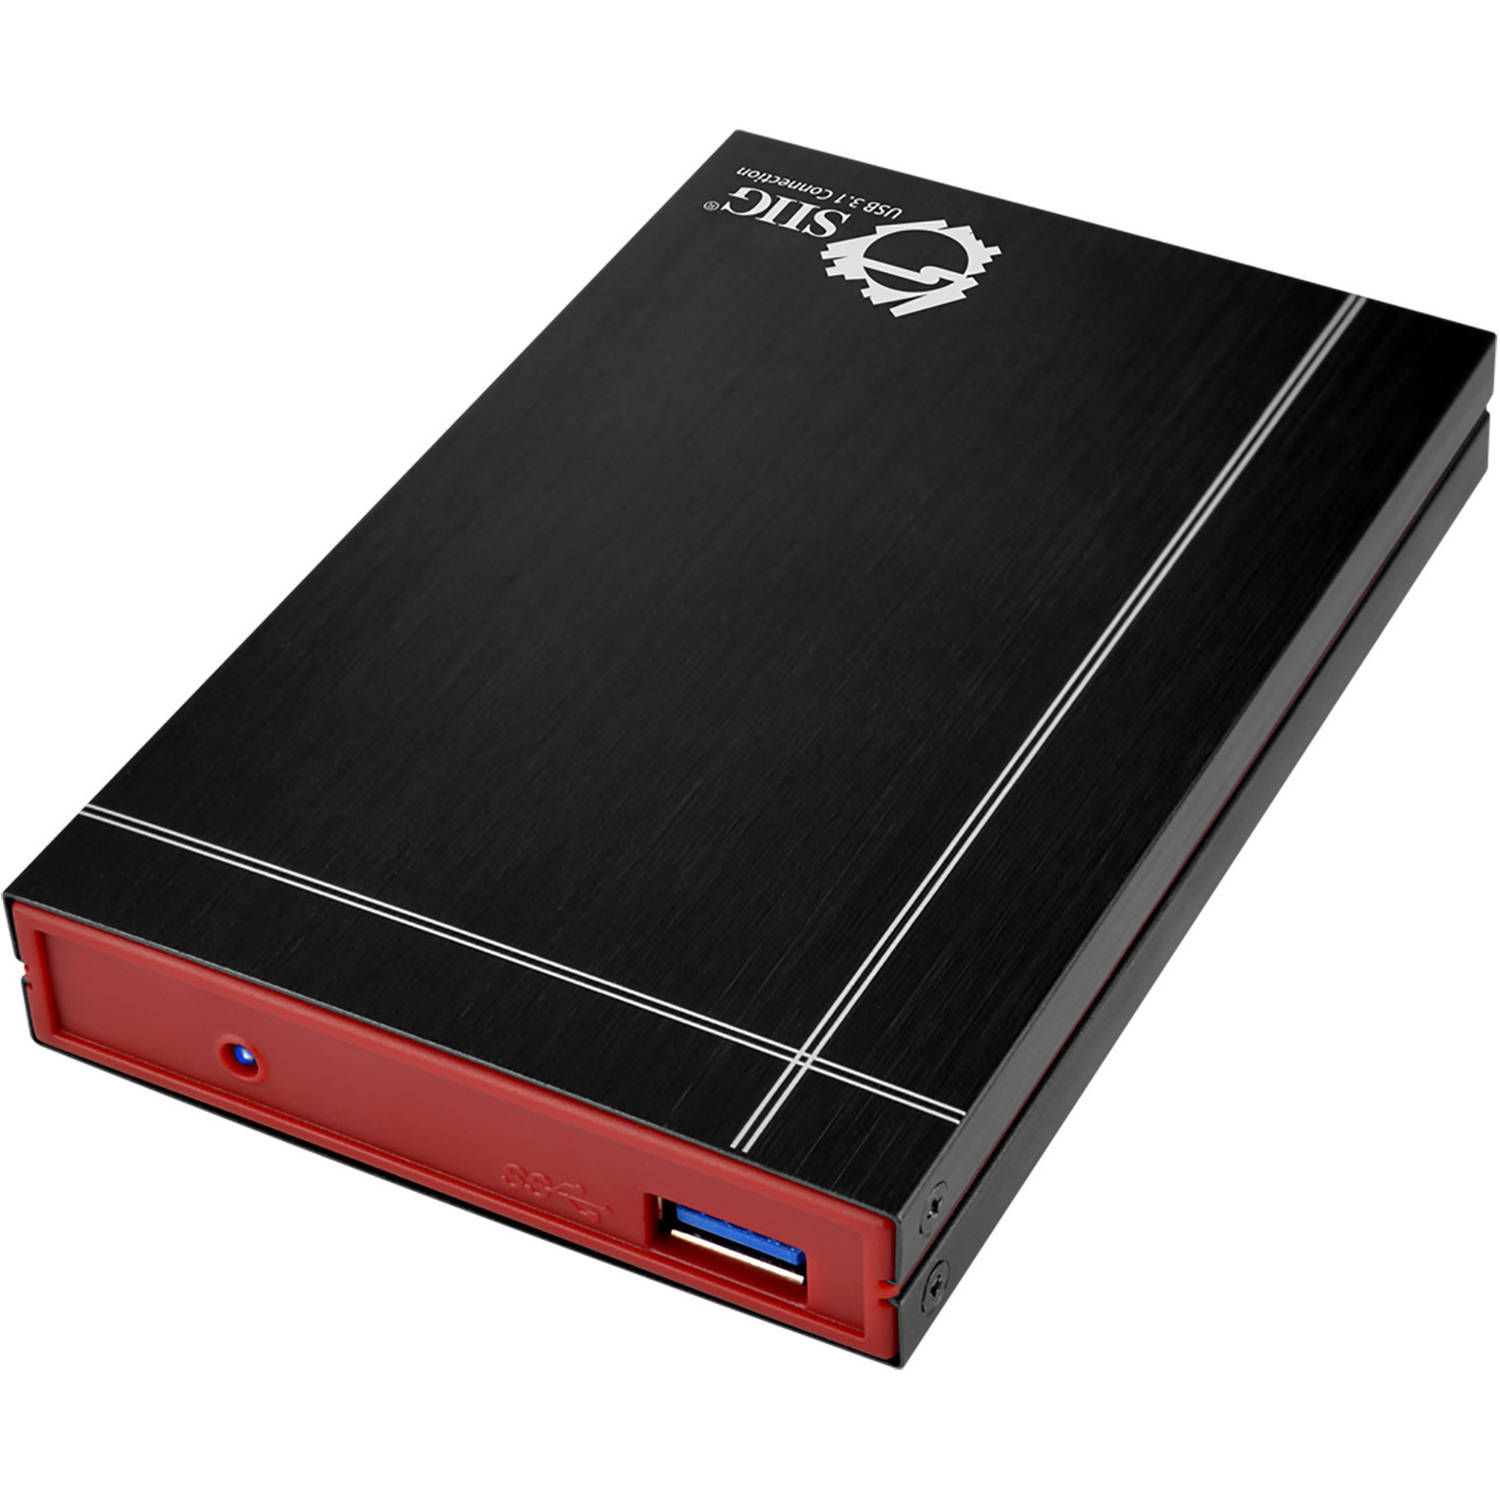 "SIIG USB 3.1 to SATA 2.5"" External Hard Drive Enclosure"